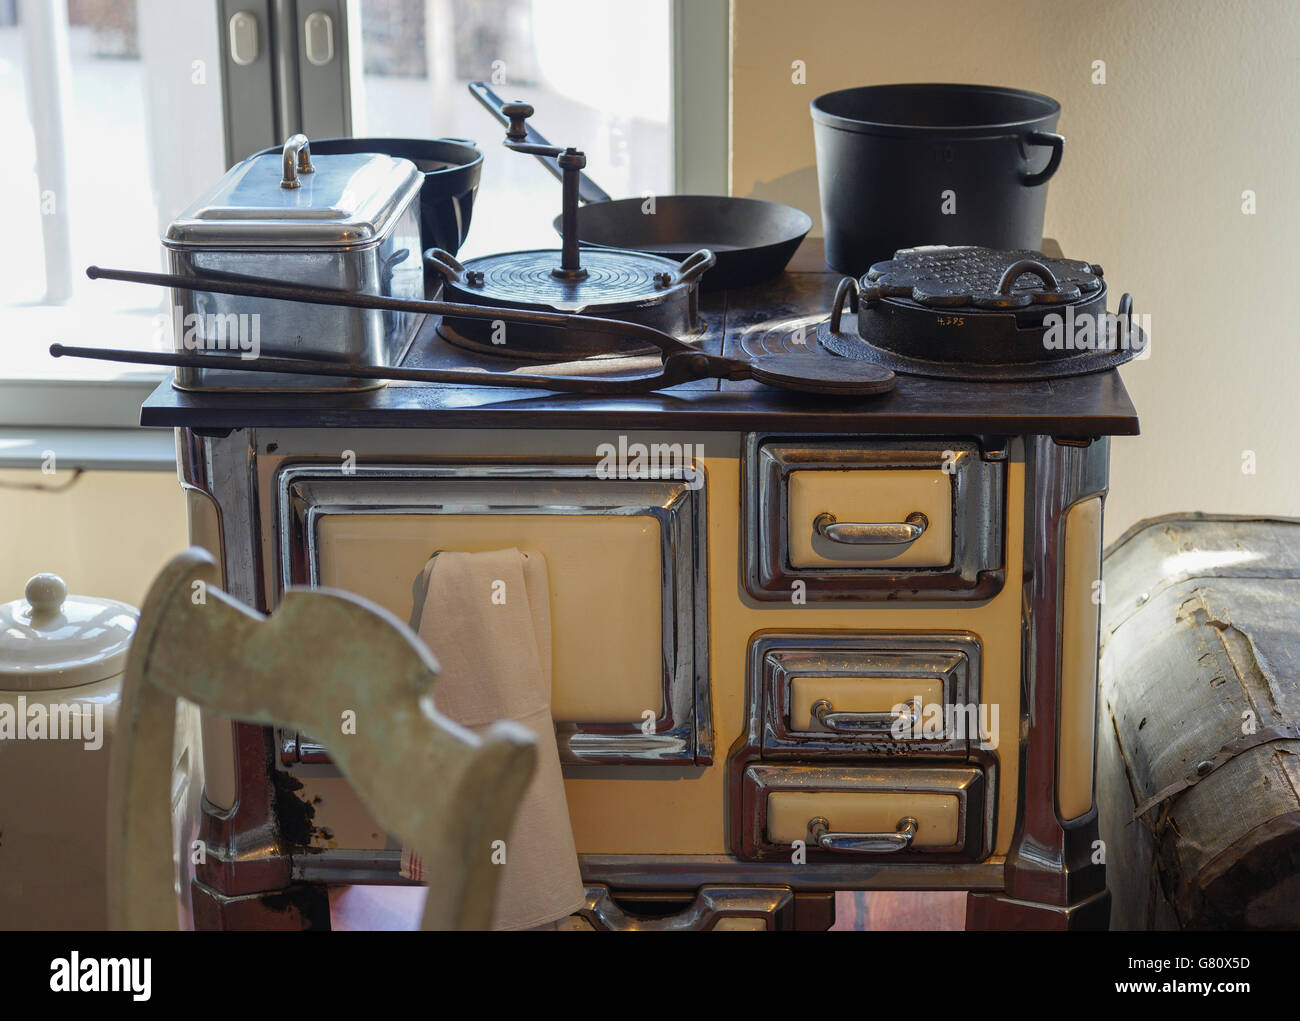 Old kitchen stove with cooking and baking utensils - Stock Image